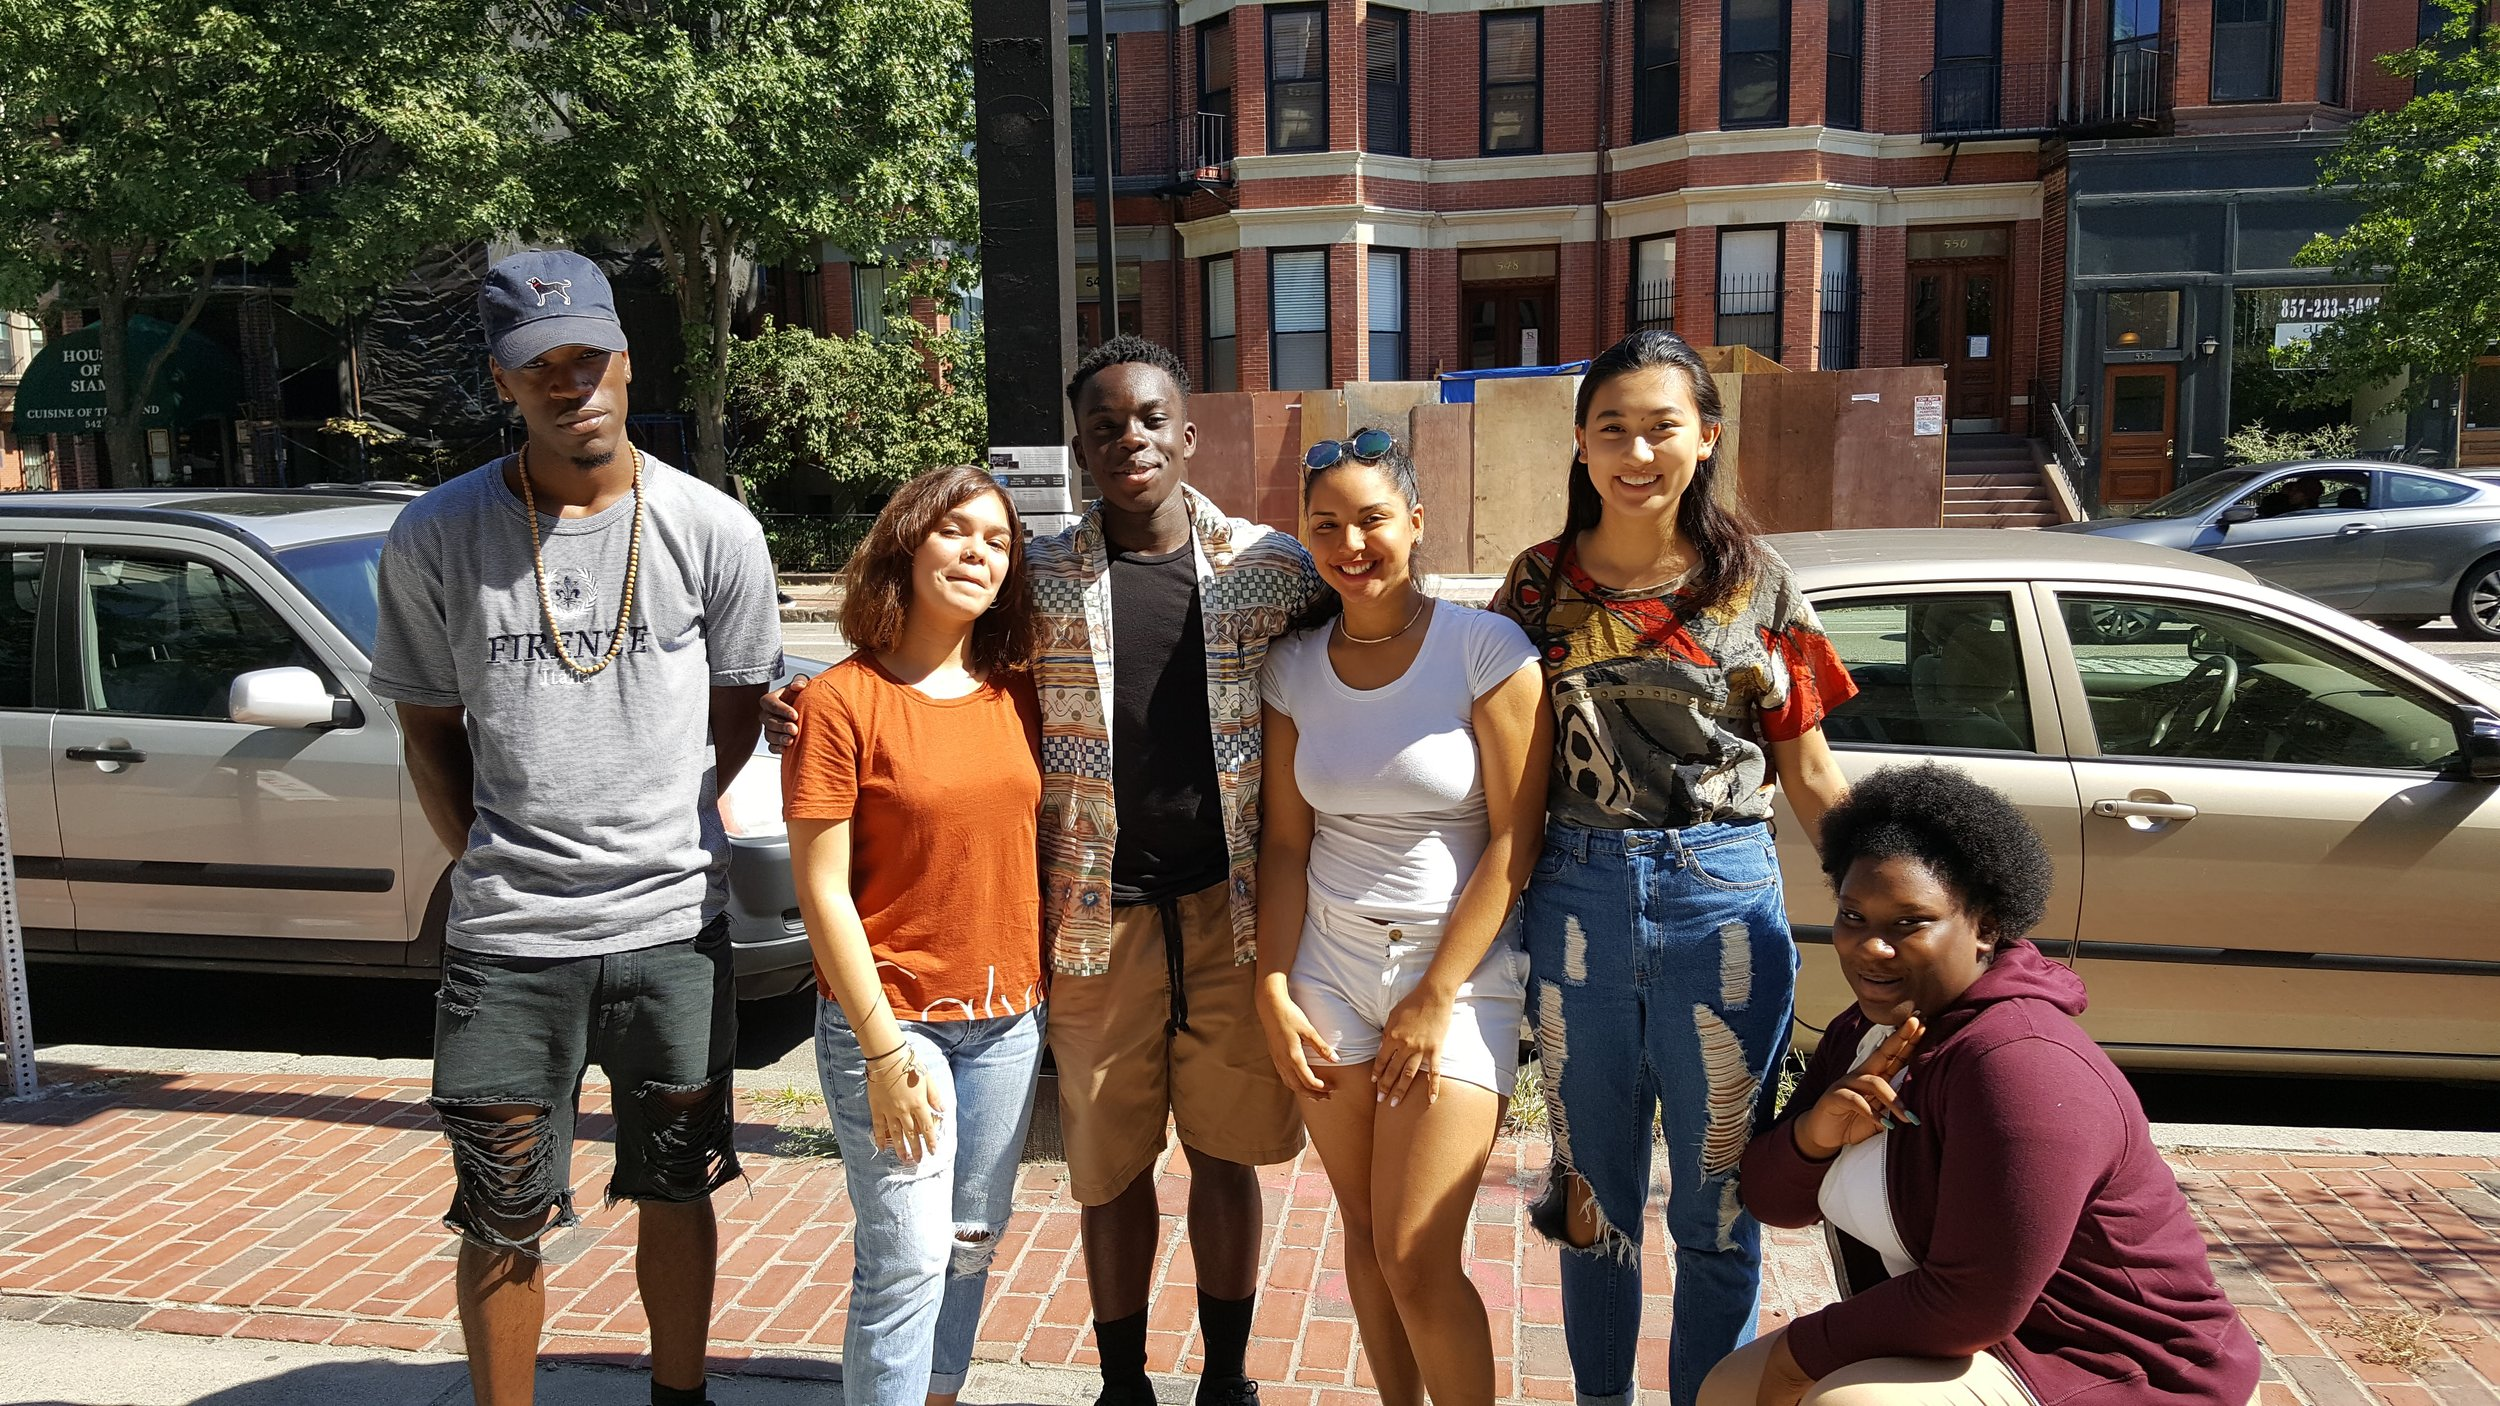 Members of the Youth Spoken Word Leaders Program (from left to right):  Malcolm OIiver (19, Allston), Victoria DelValle (16, Boston South End), Kofi Dadzie (17, Westborough), Michelle Garcia (17, Lynn), Athena Chu (16, Brighton), Andrine Pierresant (14, Cambridge)